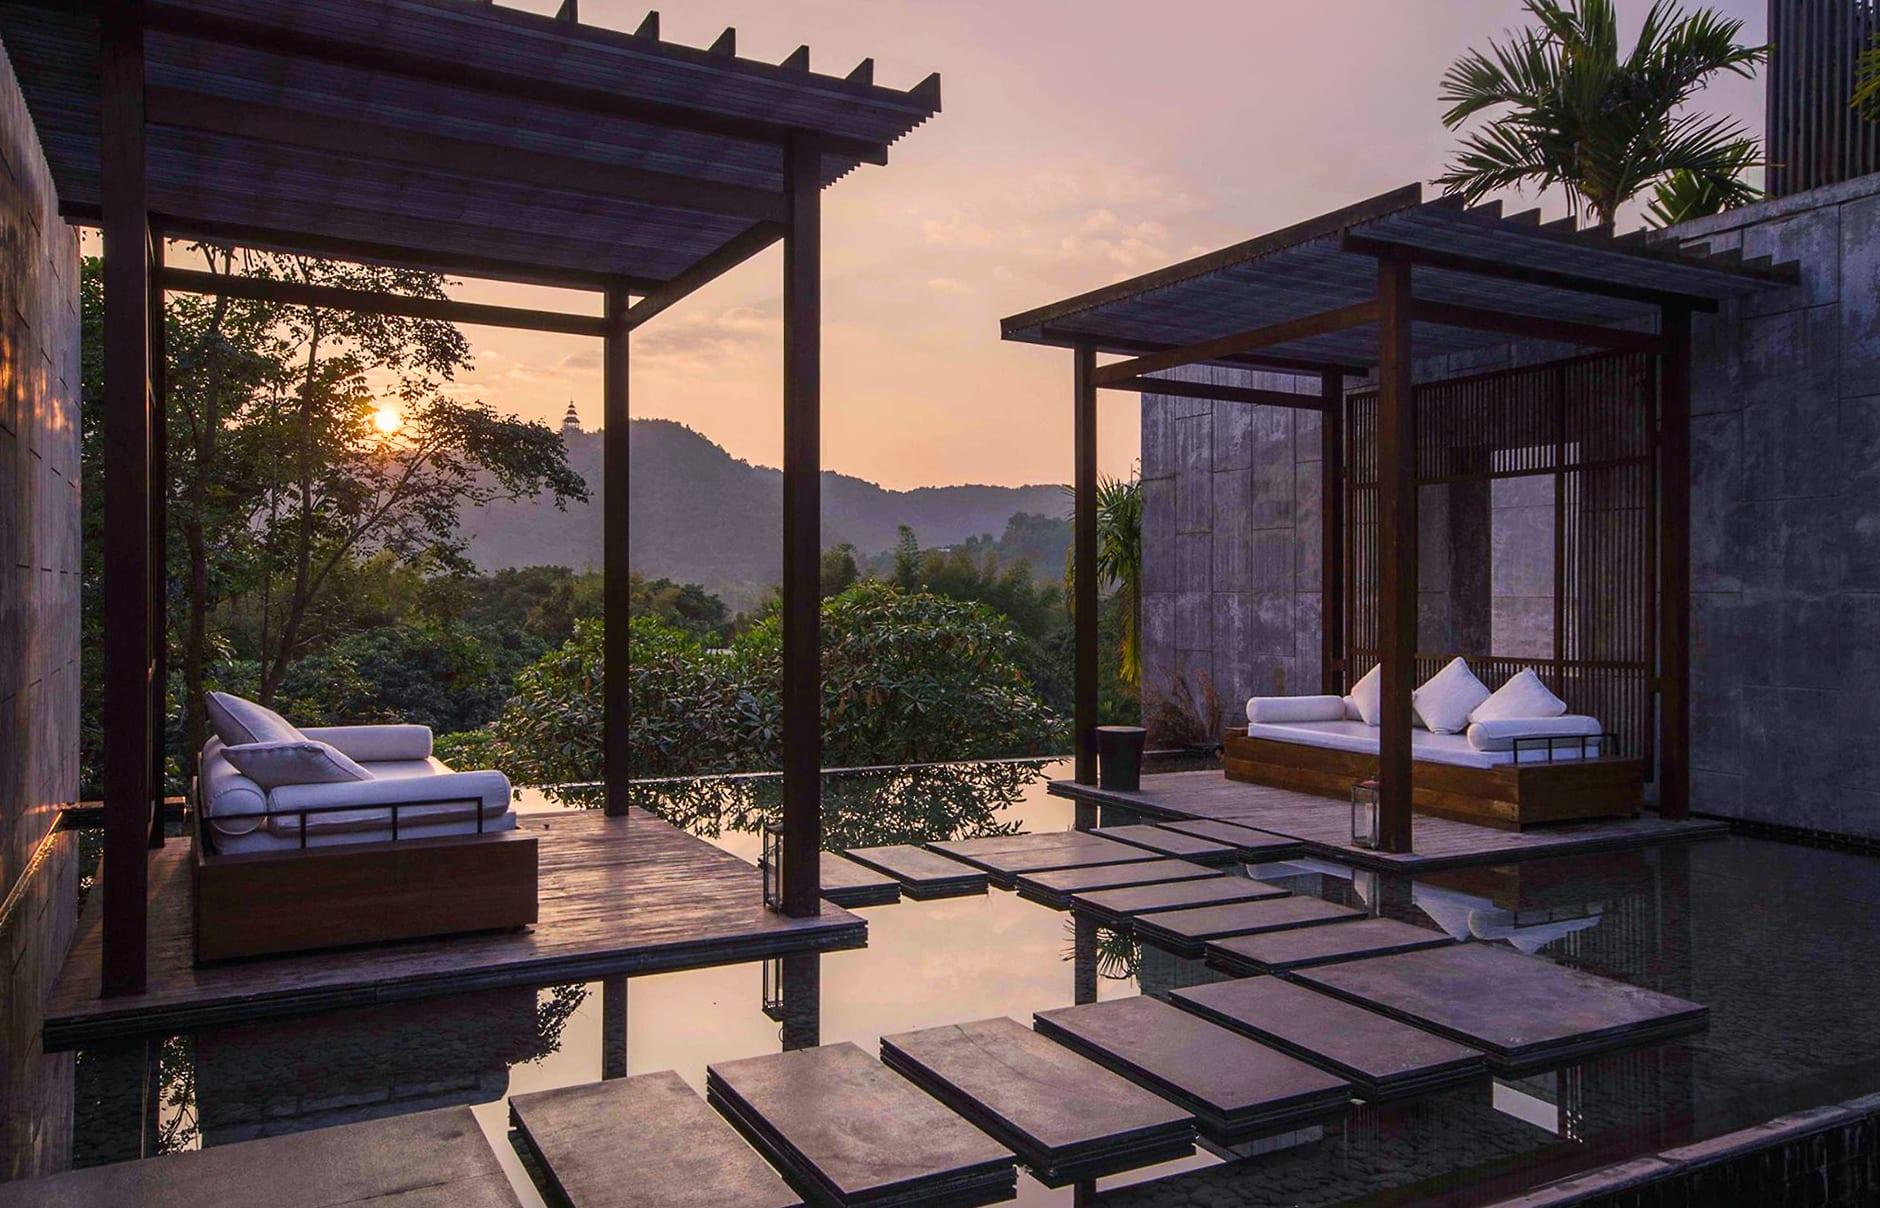 Spa. Veranda Chiang Mai - The High Resort. Thailand. © Veranda Chiang Mai - The High Resort